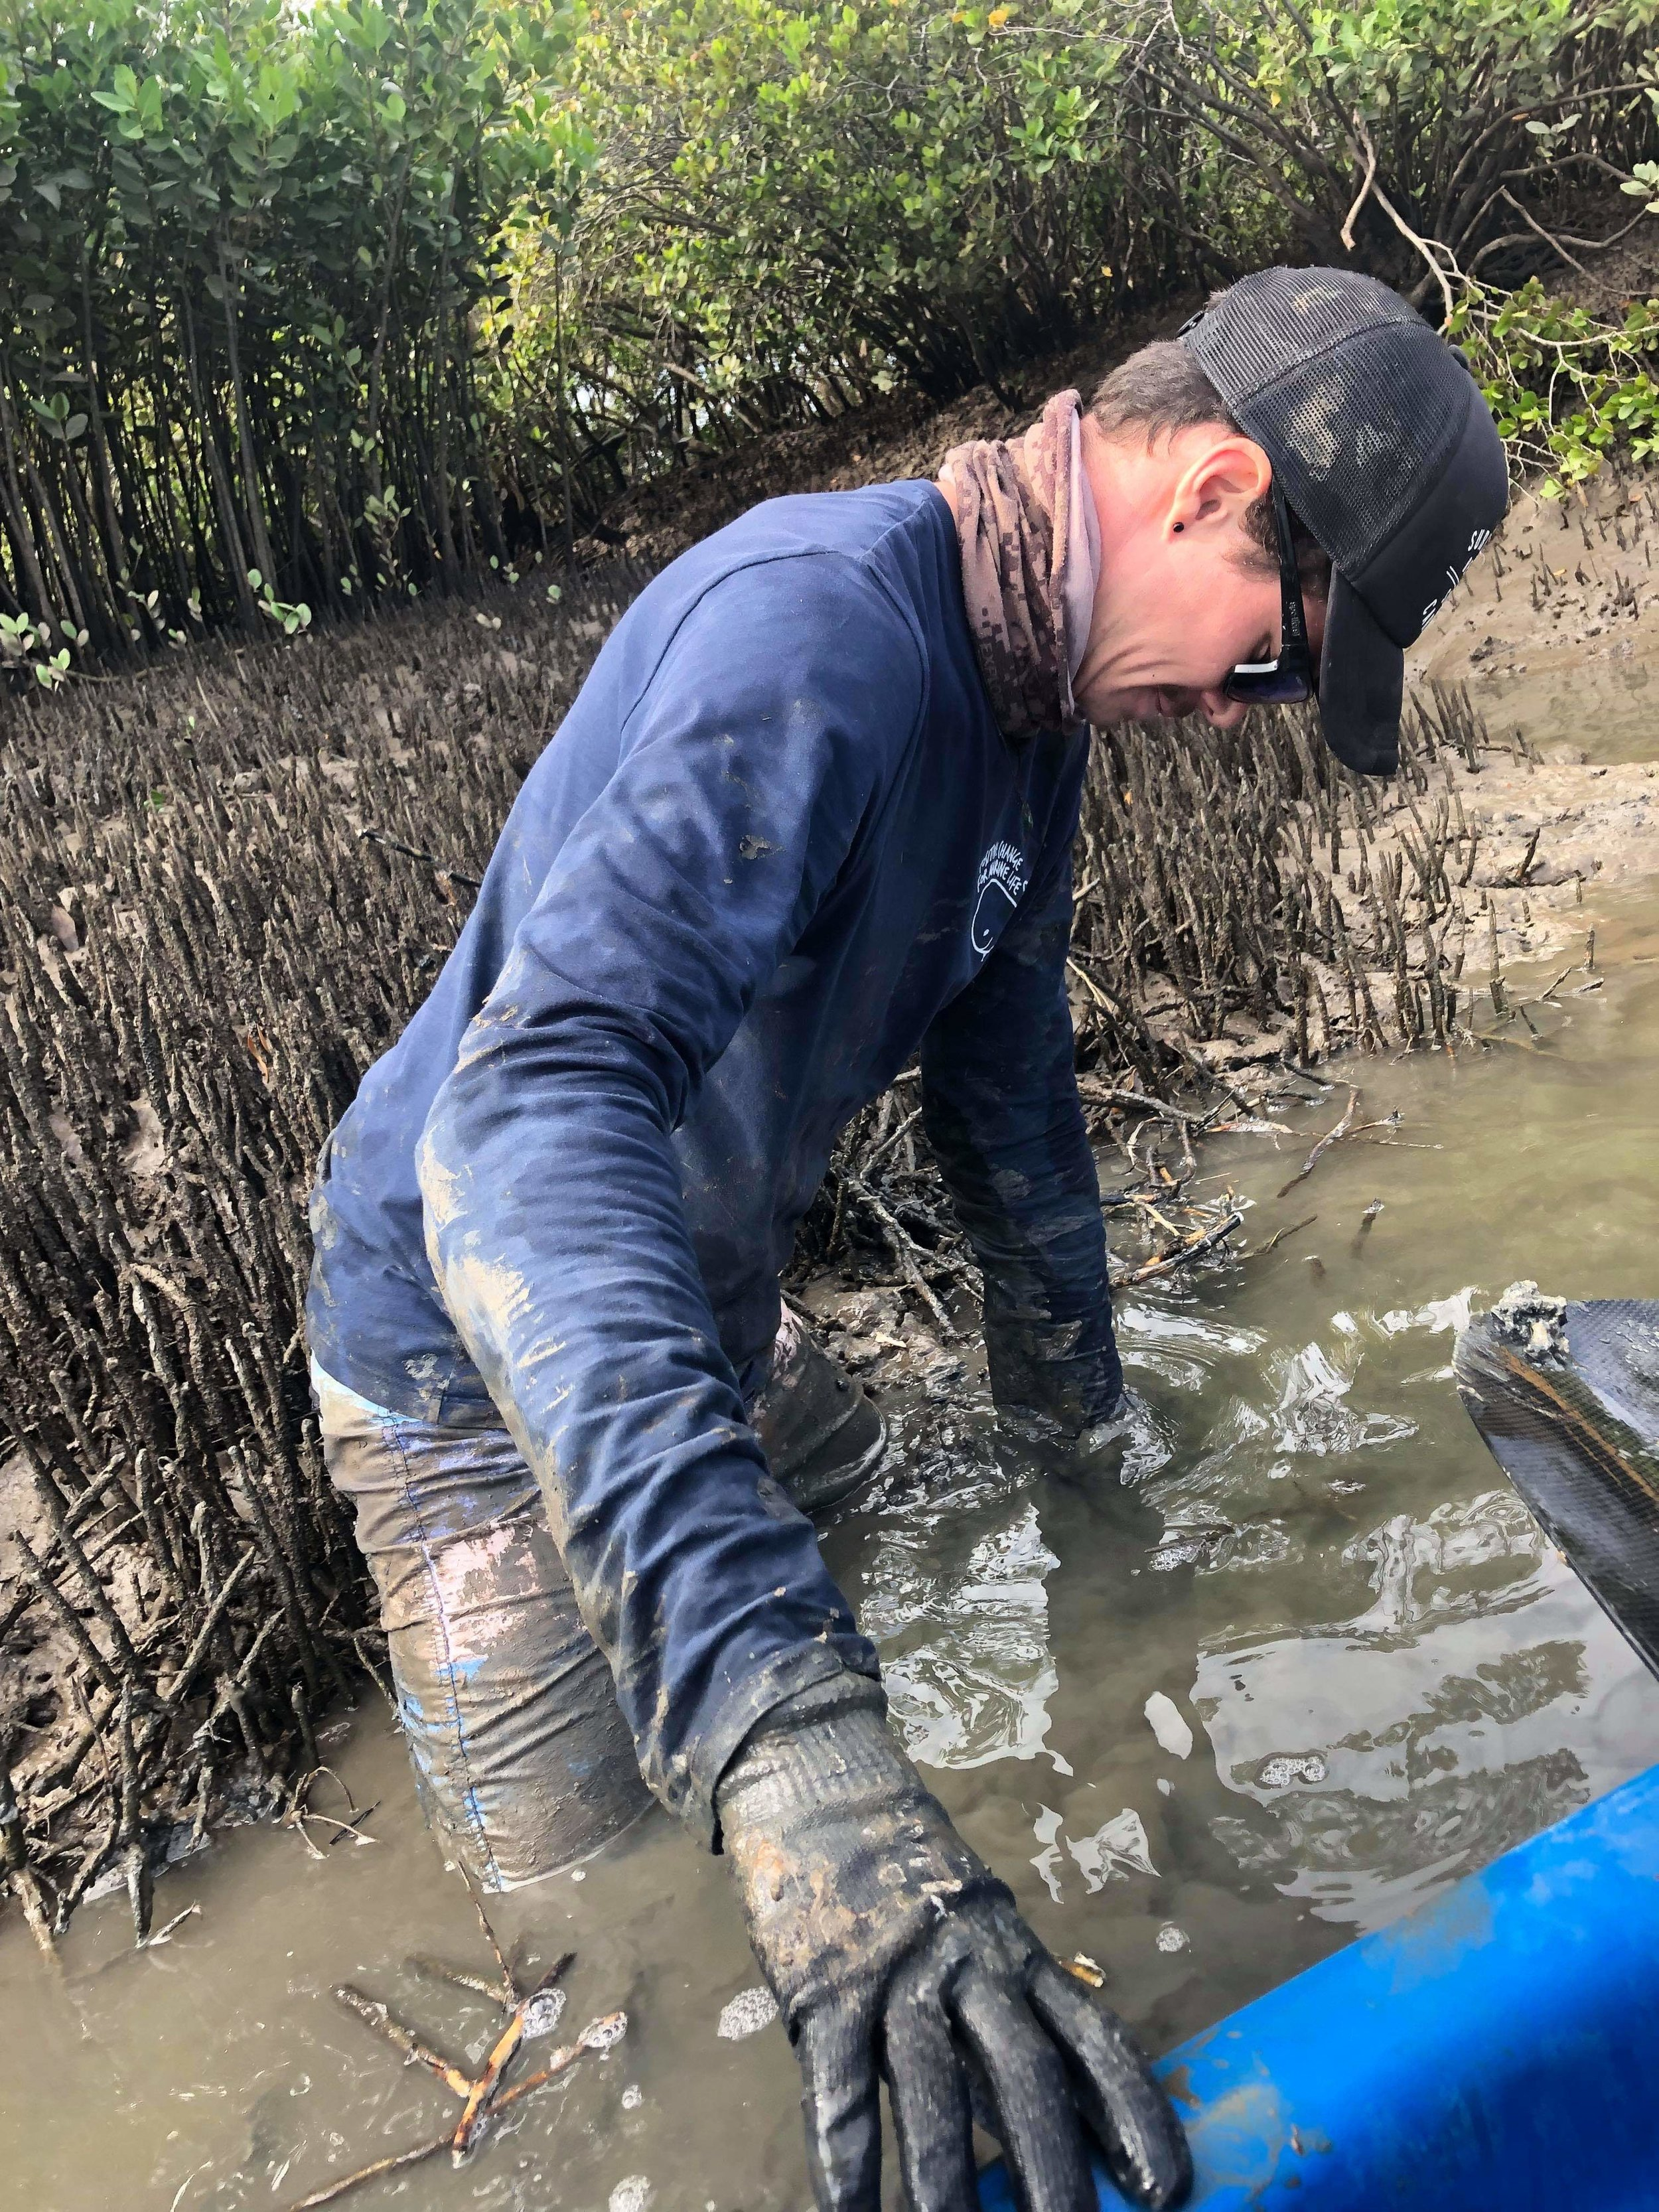 Our River Warriors Redlands Coordinator Kyle Debets, getting his hands dirty to retrieve debris from the mangroves in Tingalpa Creek.